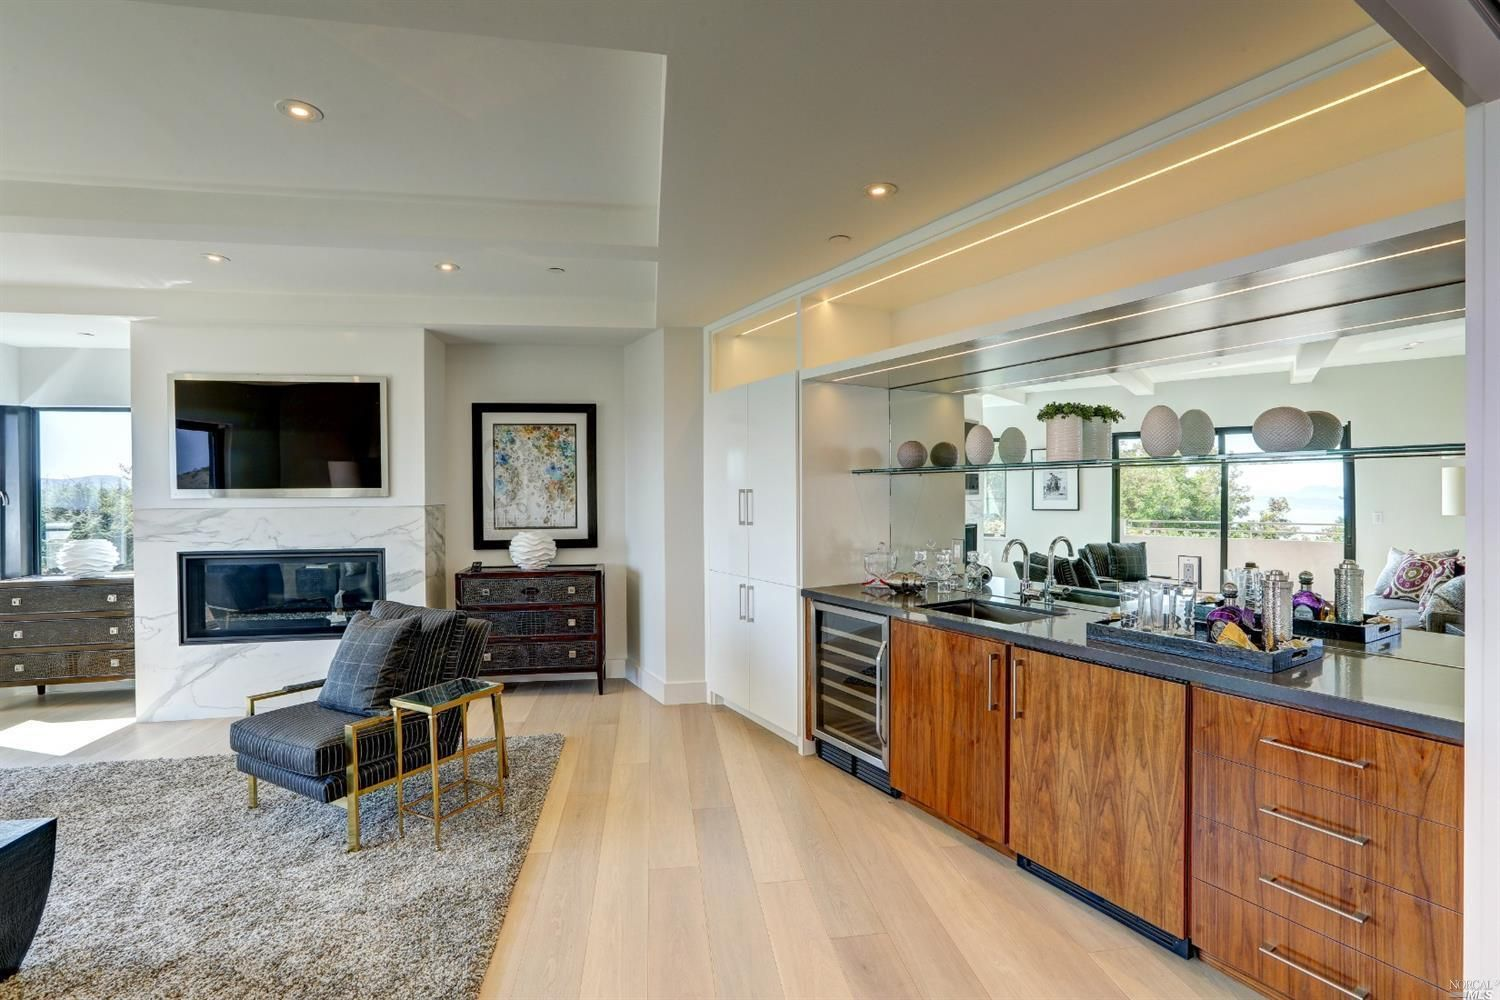 86 Sugarloaf Drive Tiburon Ca 5 Bedroom 4 Bathroom Single Family Residence Built In 1968 See Photos And More Homes For Home Sale House Contemporary House